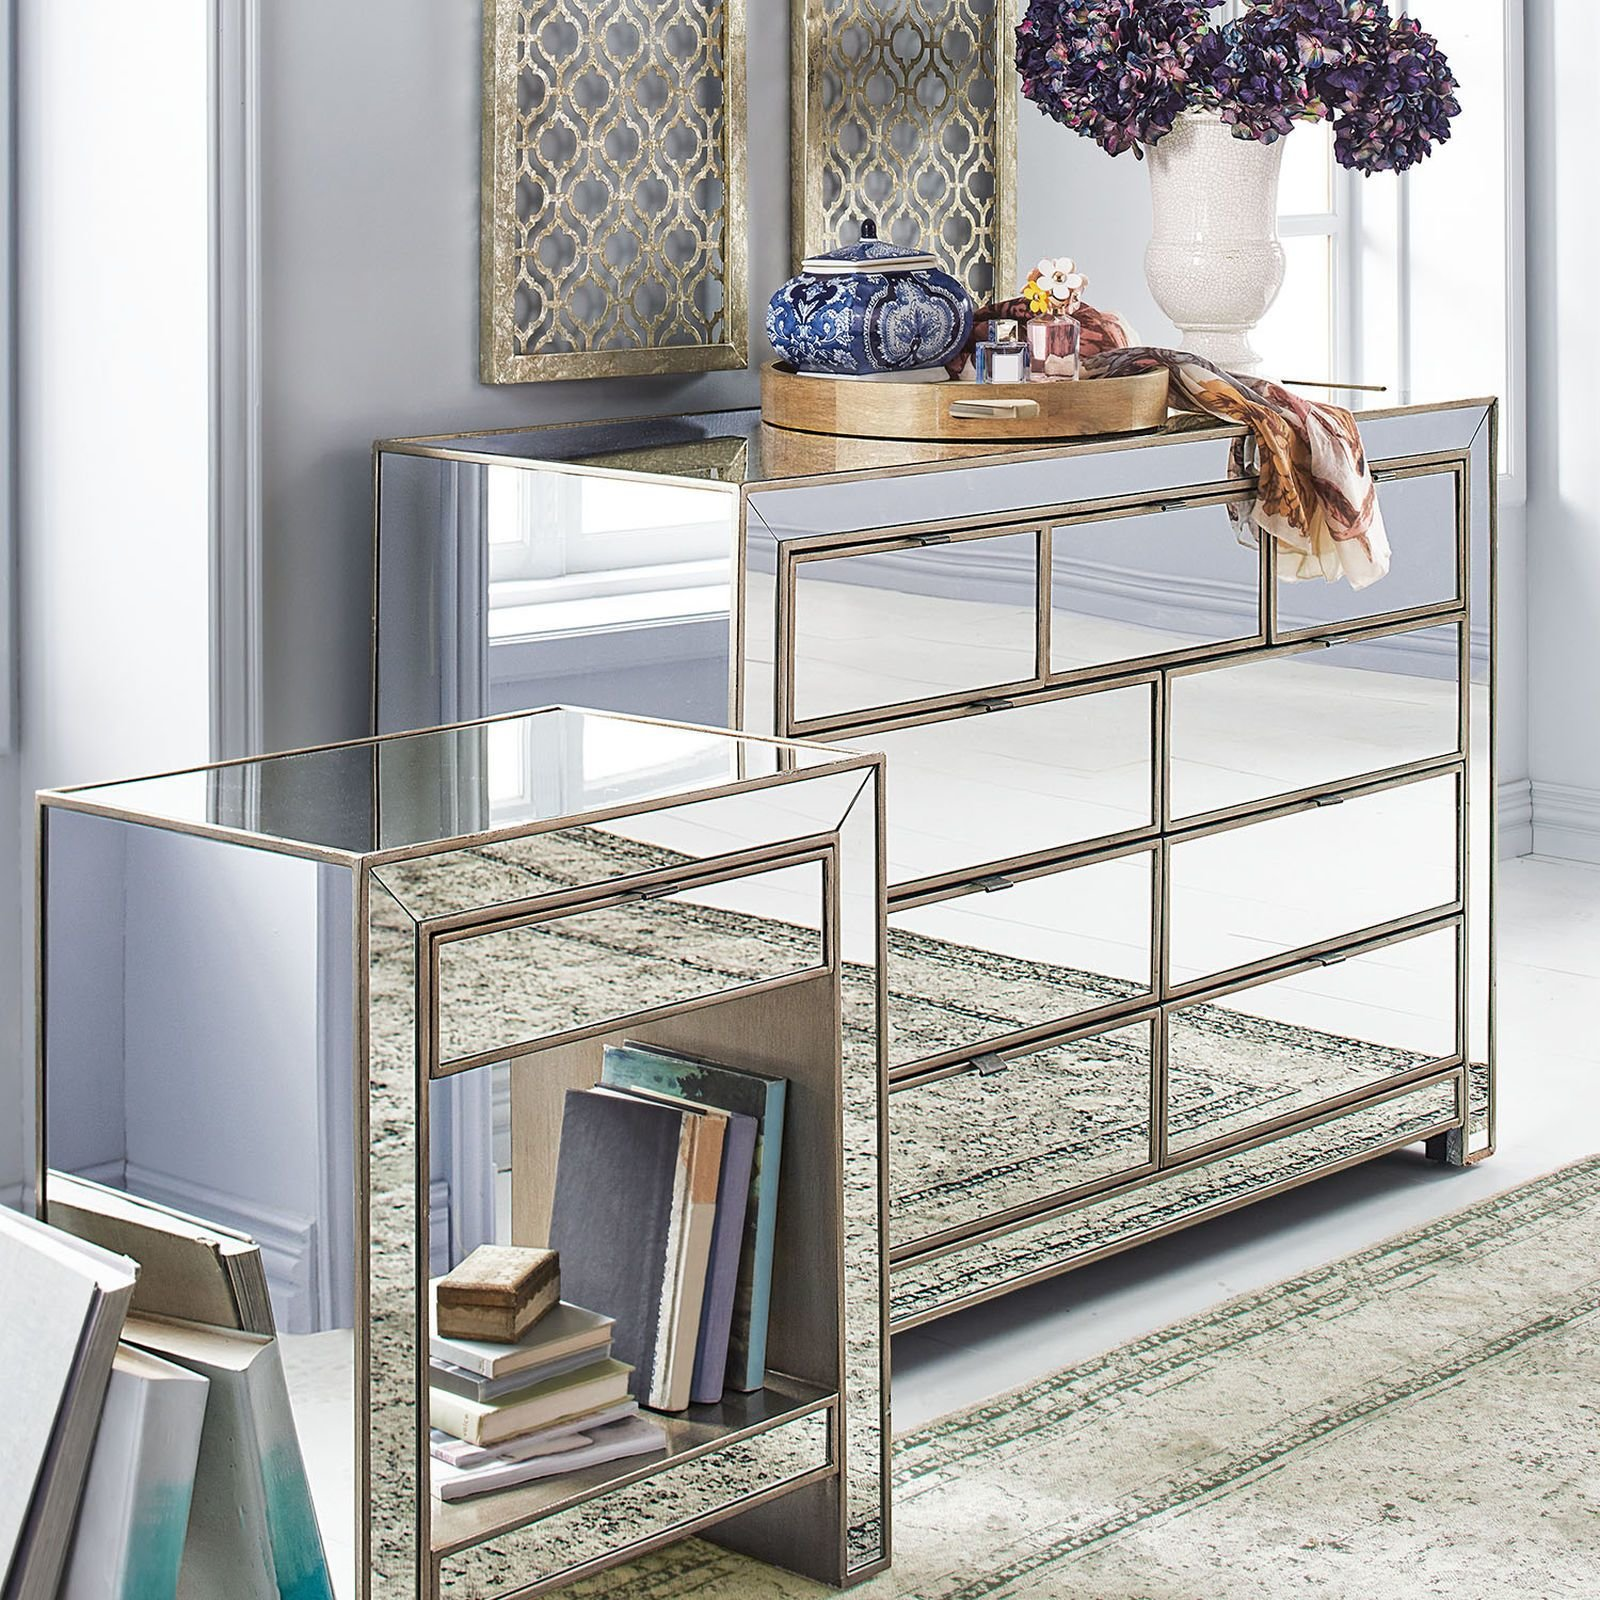 Best How To Decorate Mirrored Dresser — All Home Design Ideas With Pictures